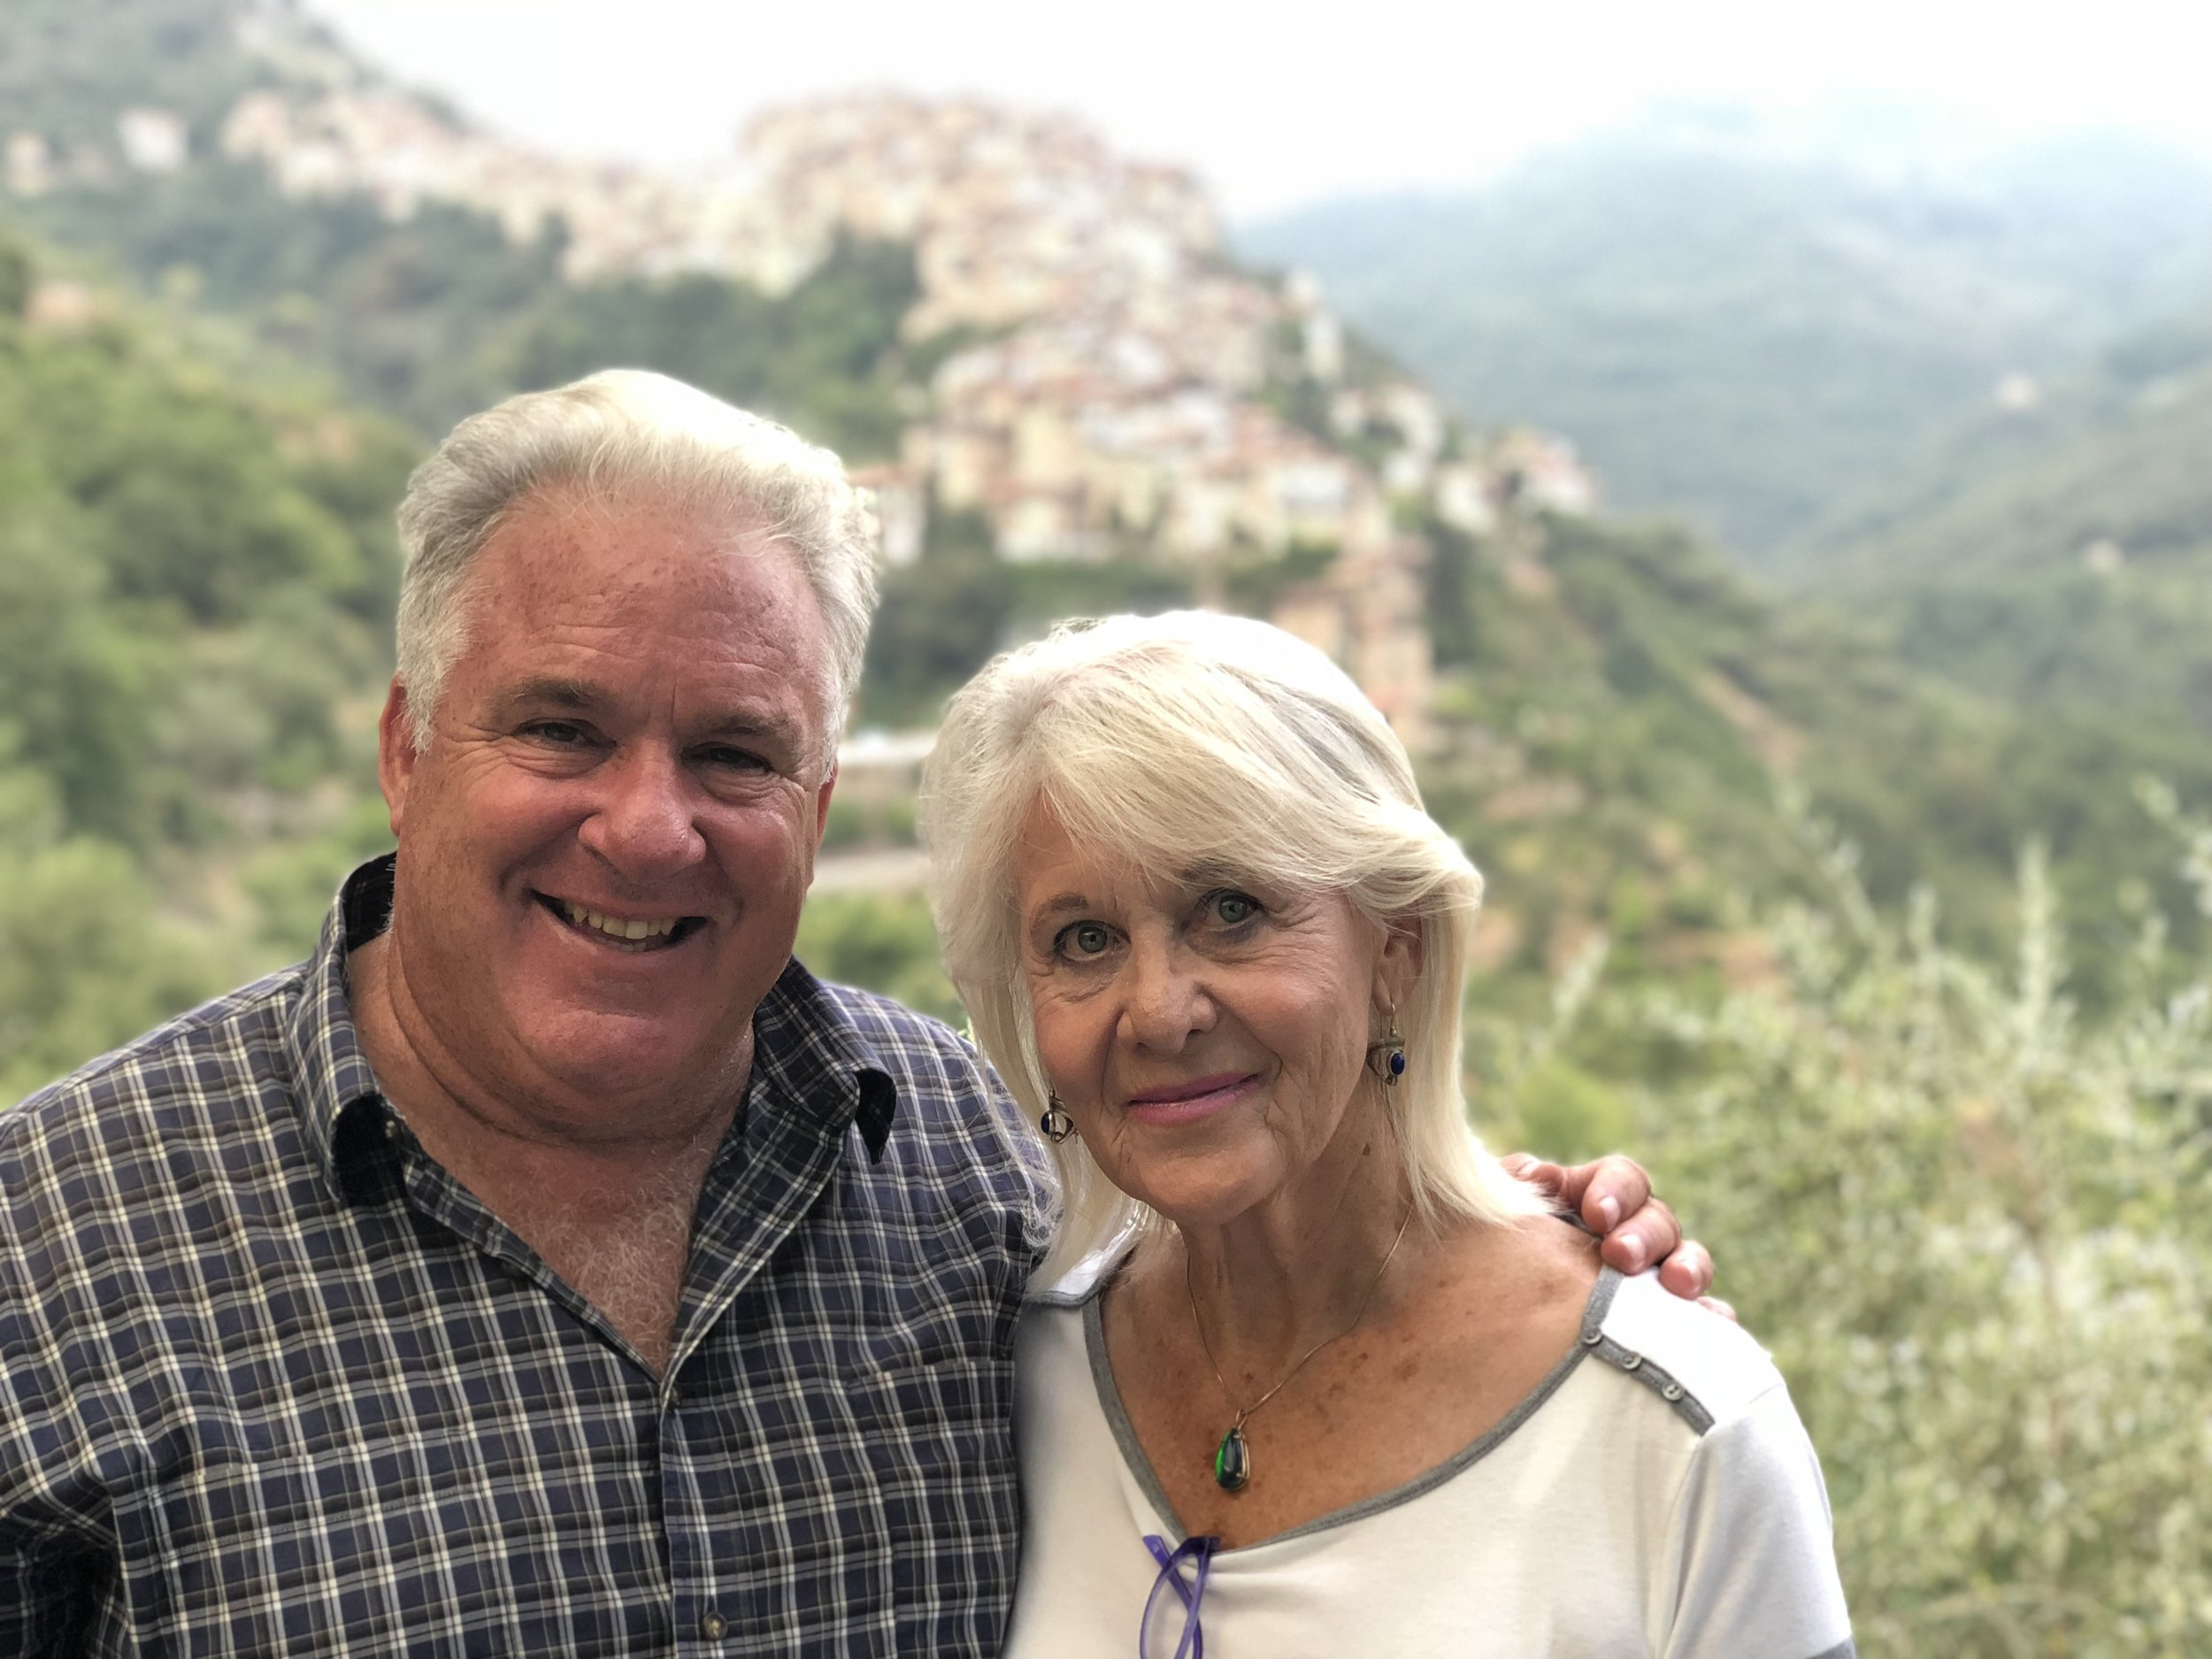 #1: the People - Meeting the people of Apricale and tourists from around the world, listening to their stories ripe with passion and fascination.